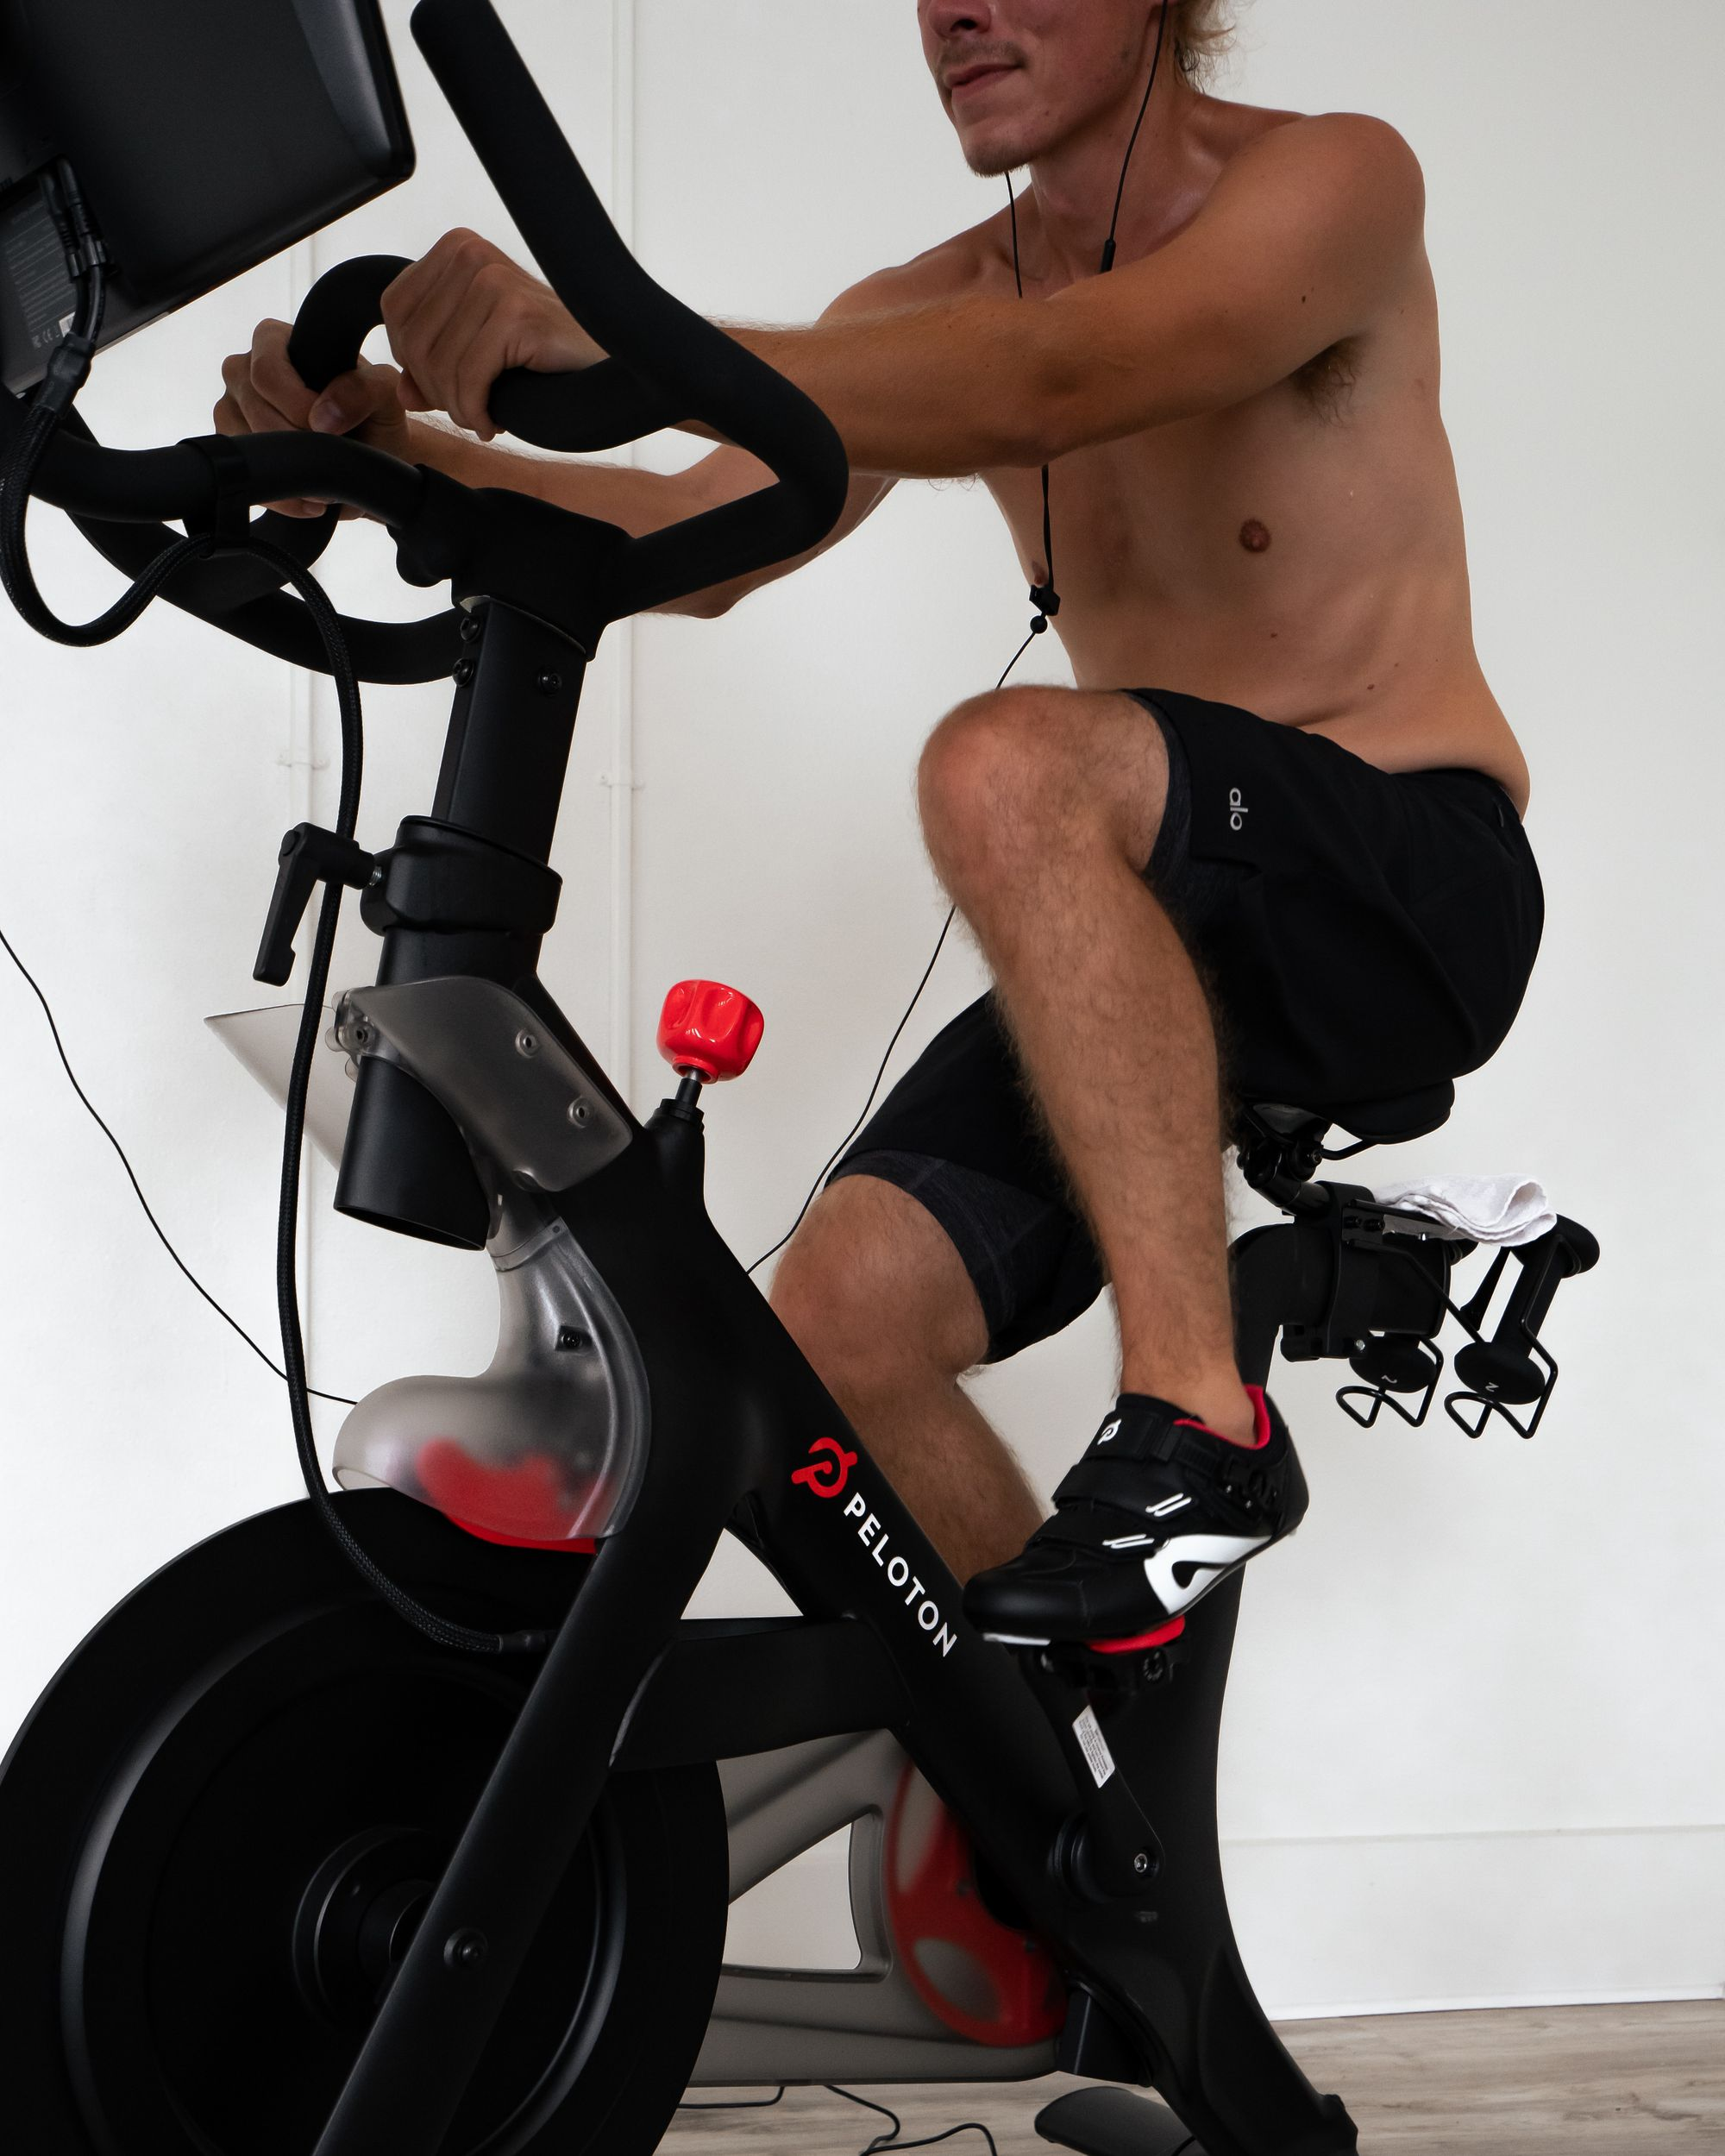 PELOTON-CARDIO-CYCLING-WORKOUT.jpg